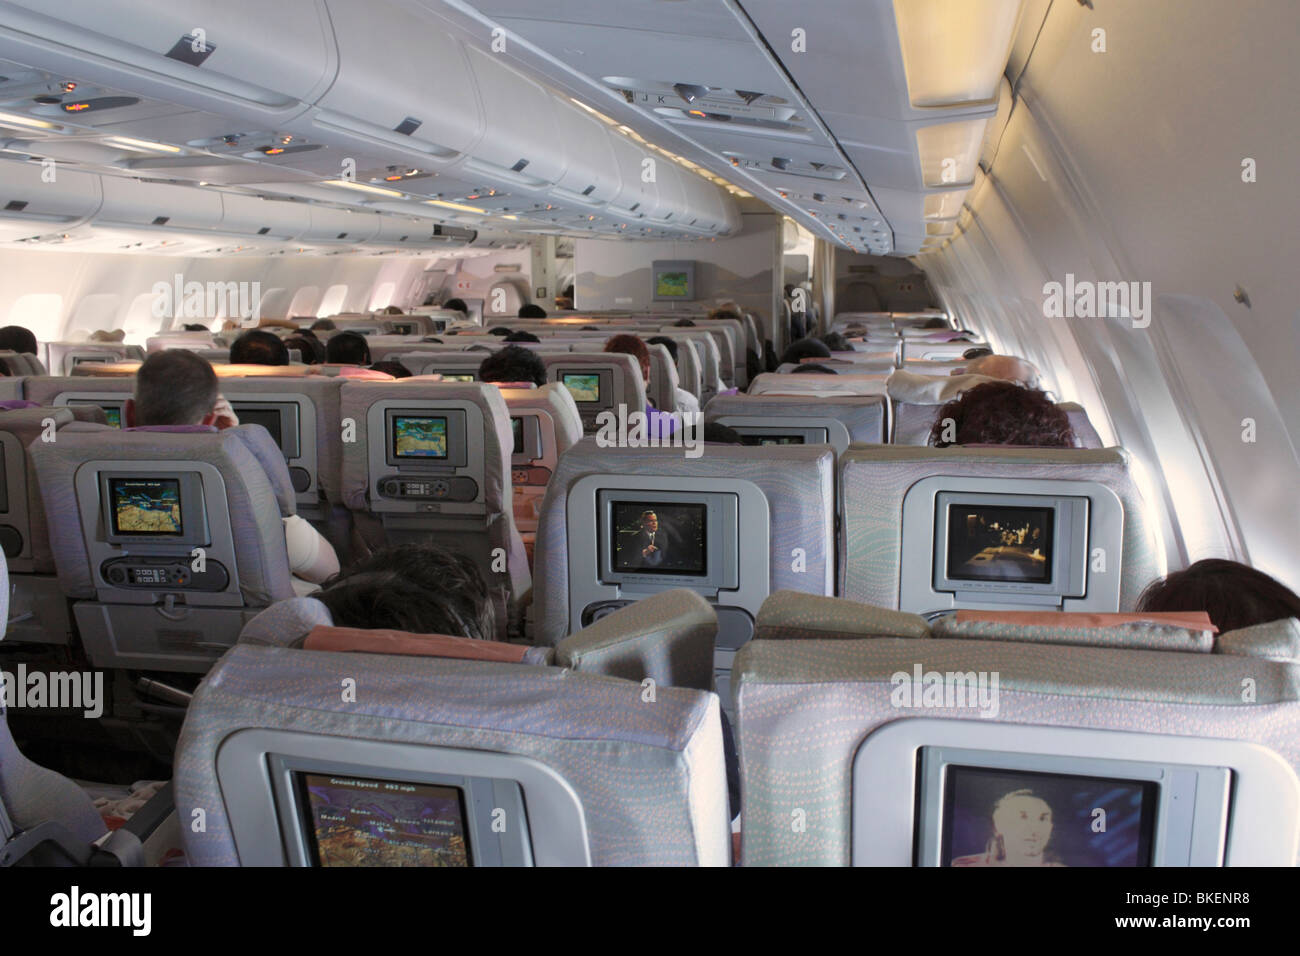 Air travel and tourism. Economy class seating in a long-haul airliner - Stock Image